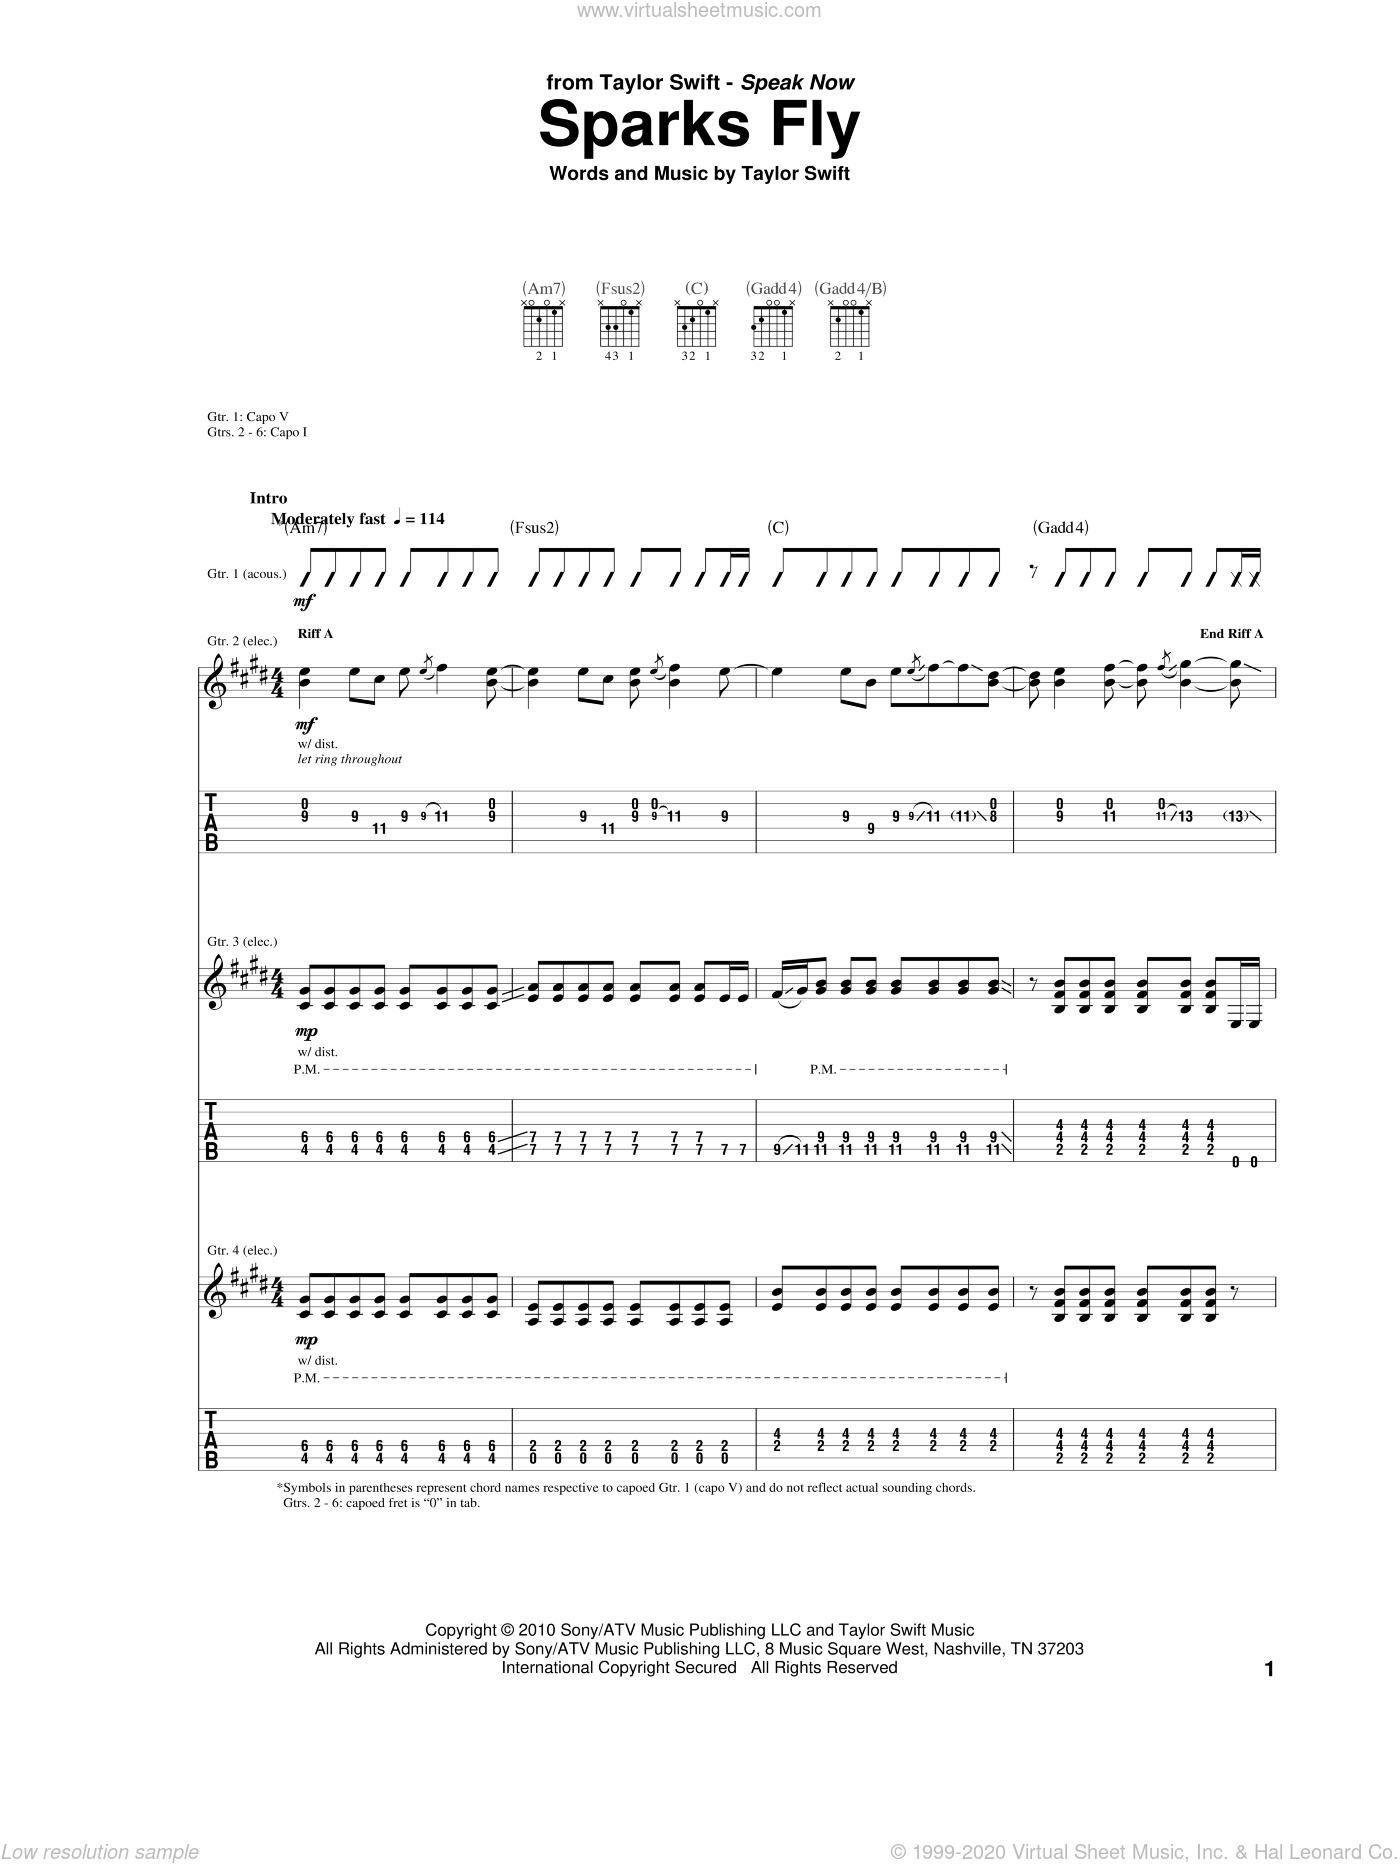 Swift Sparks Fly Sheet Music For Guitar Tablature